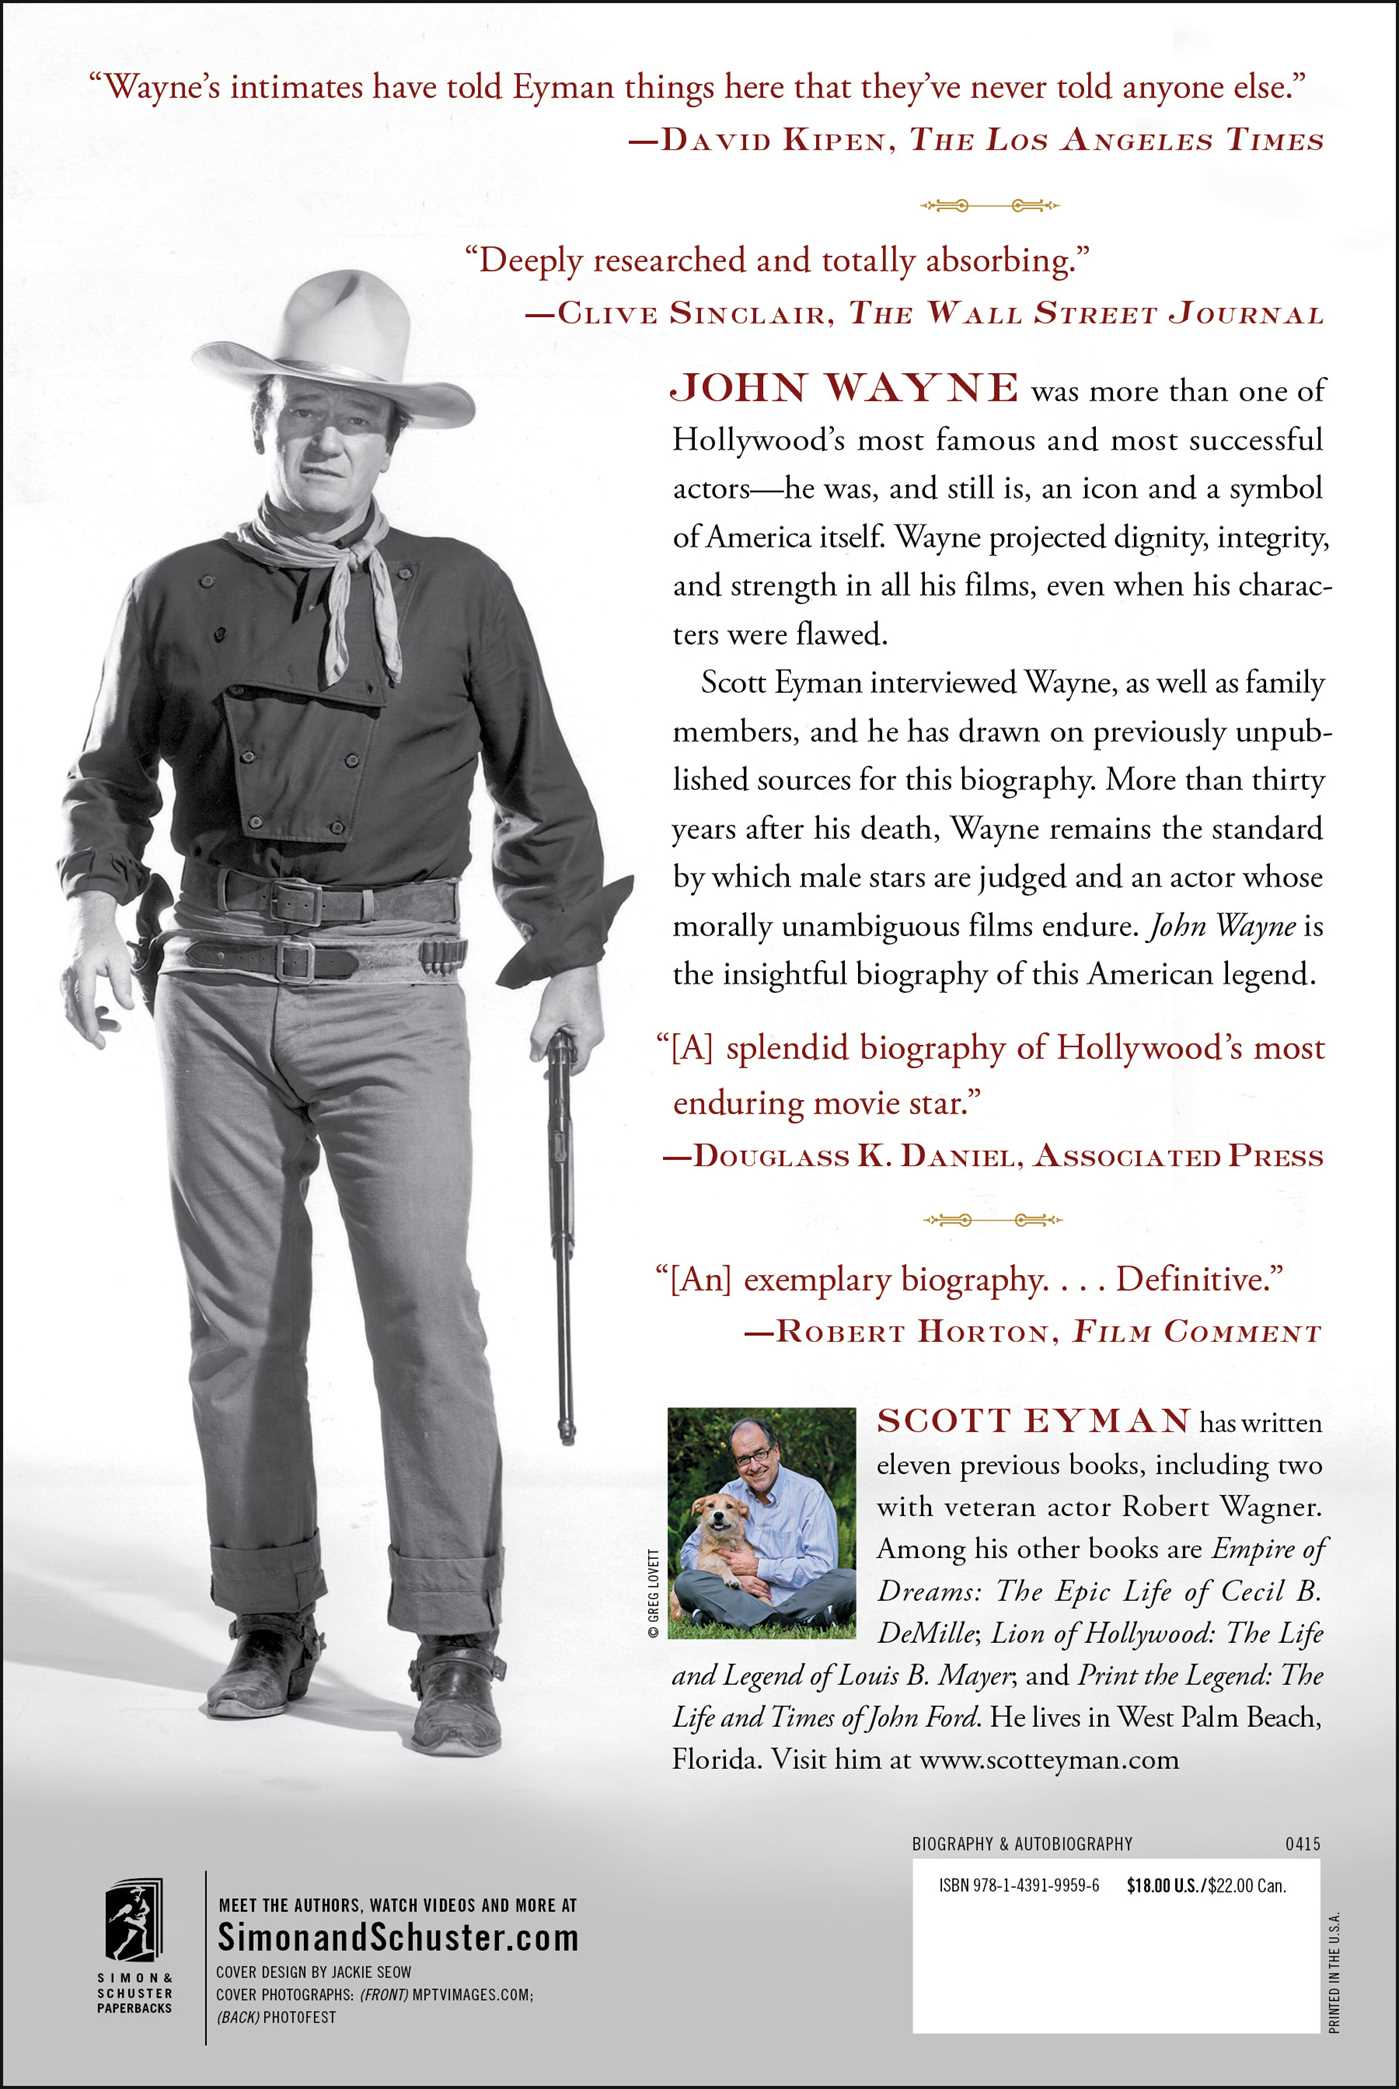 John wayne the life and legend 9781439199596 hr back